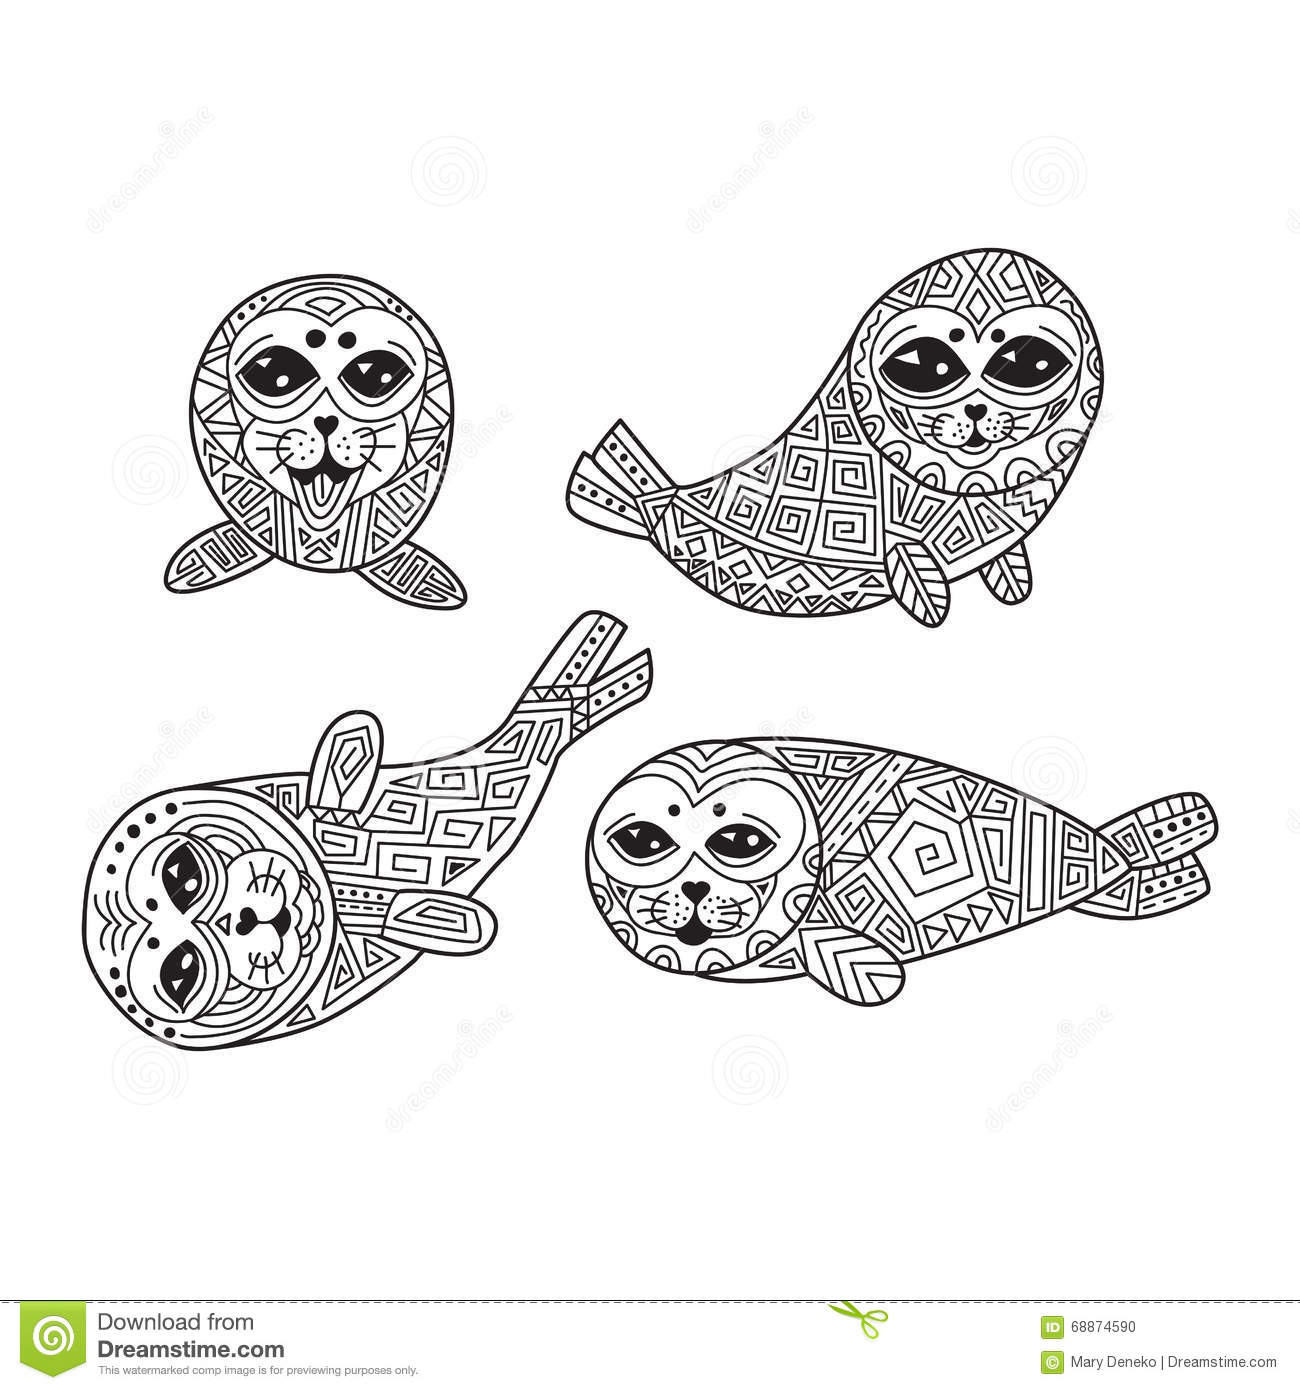 Zentangle The Baikal Seals For Adult Anti Stress Coloring